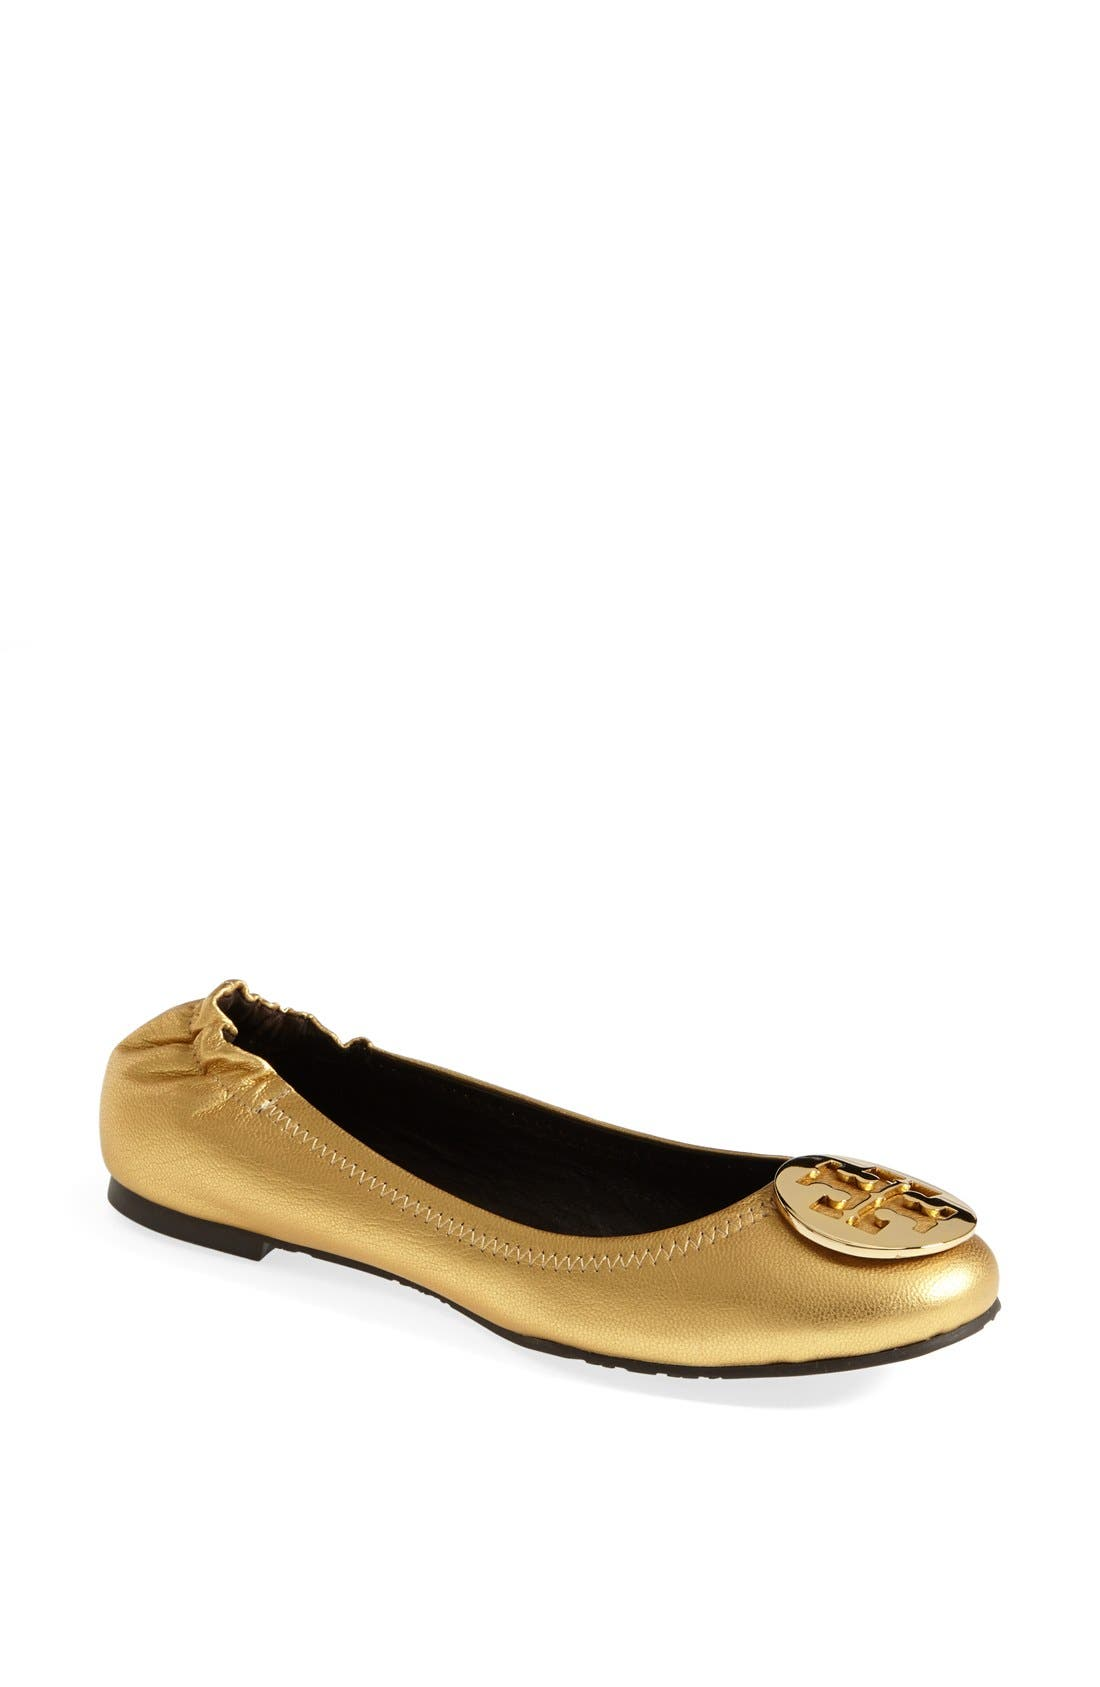 Alternate Image 1 Selected - Tory Burch 'Reva' Ballerina Flat (Women)